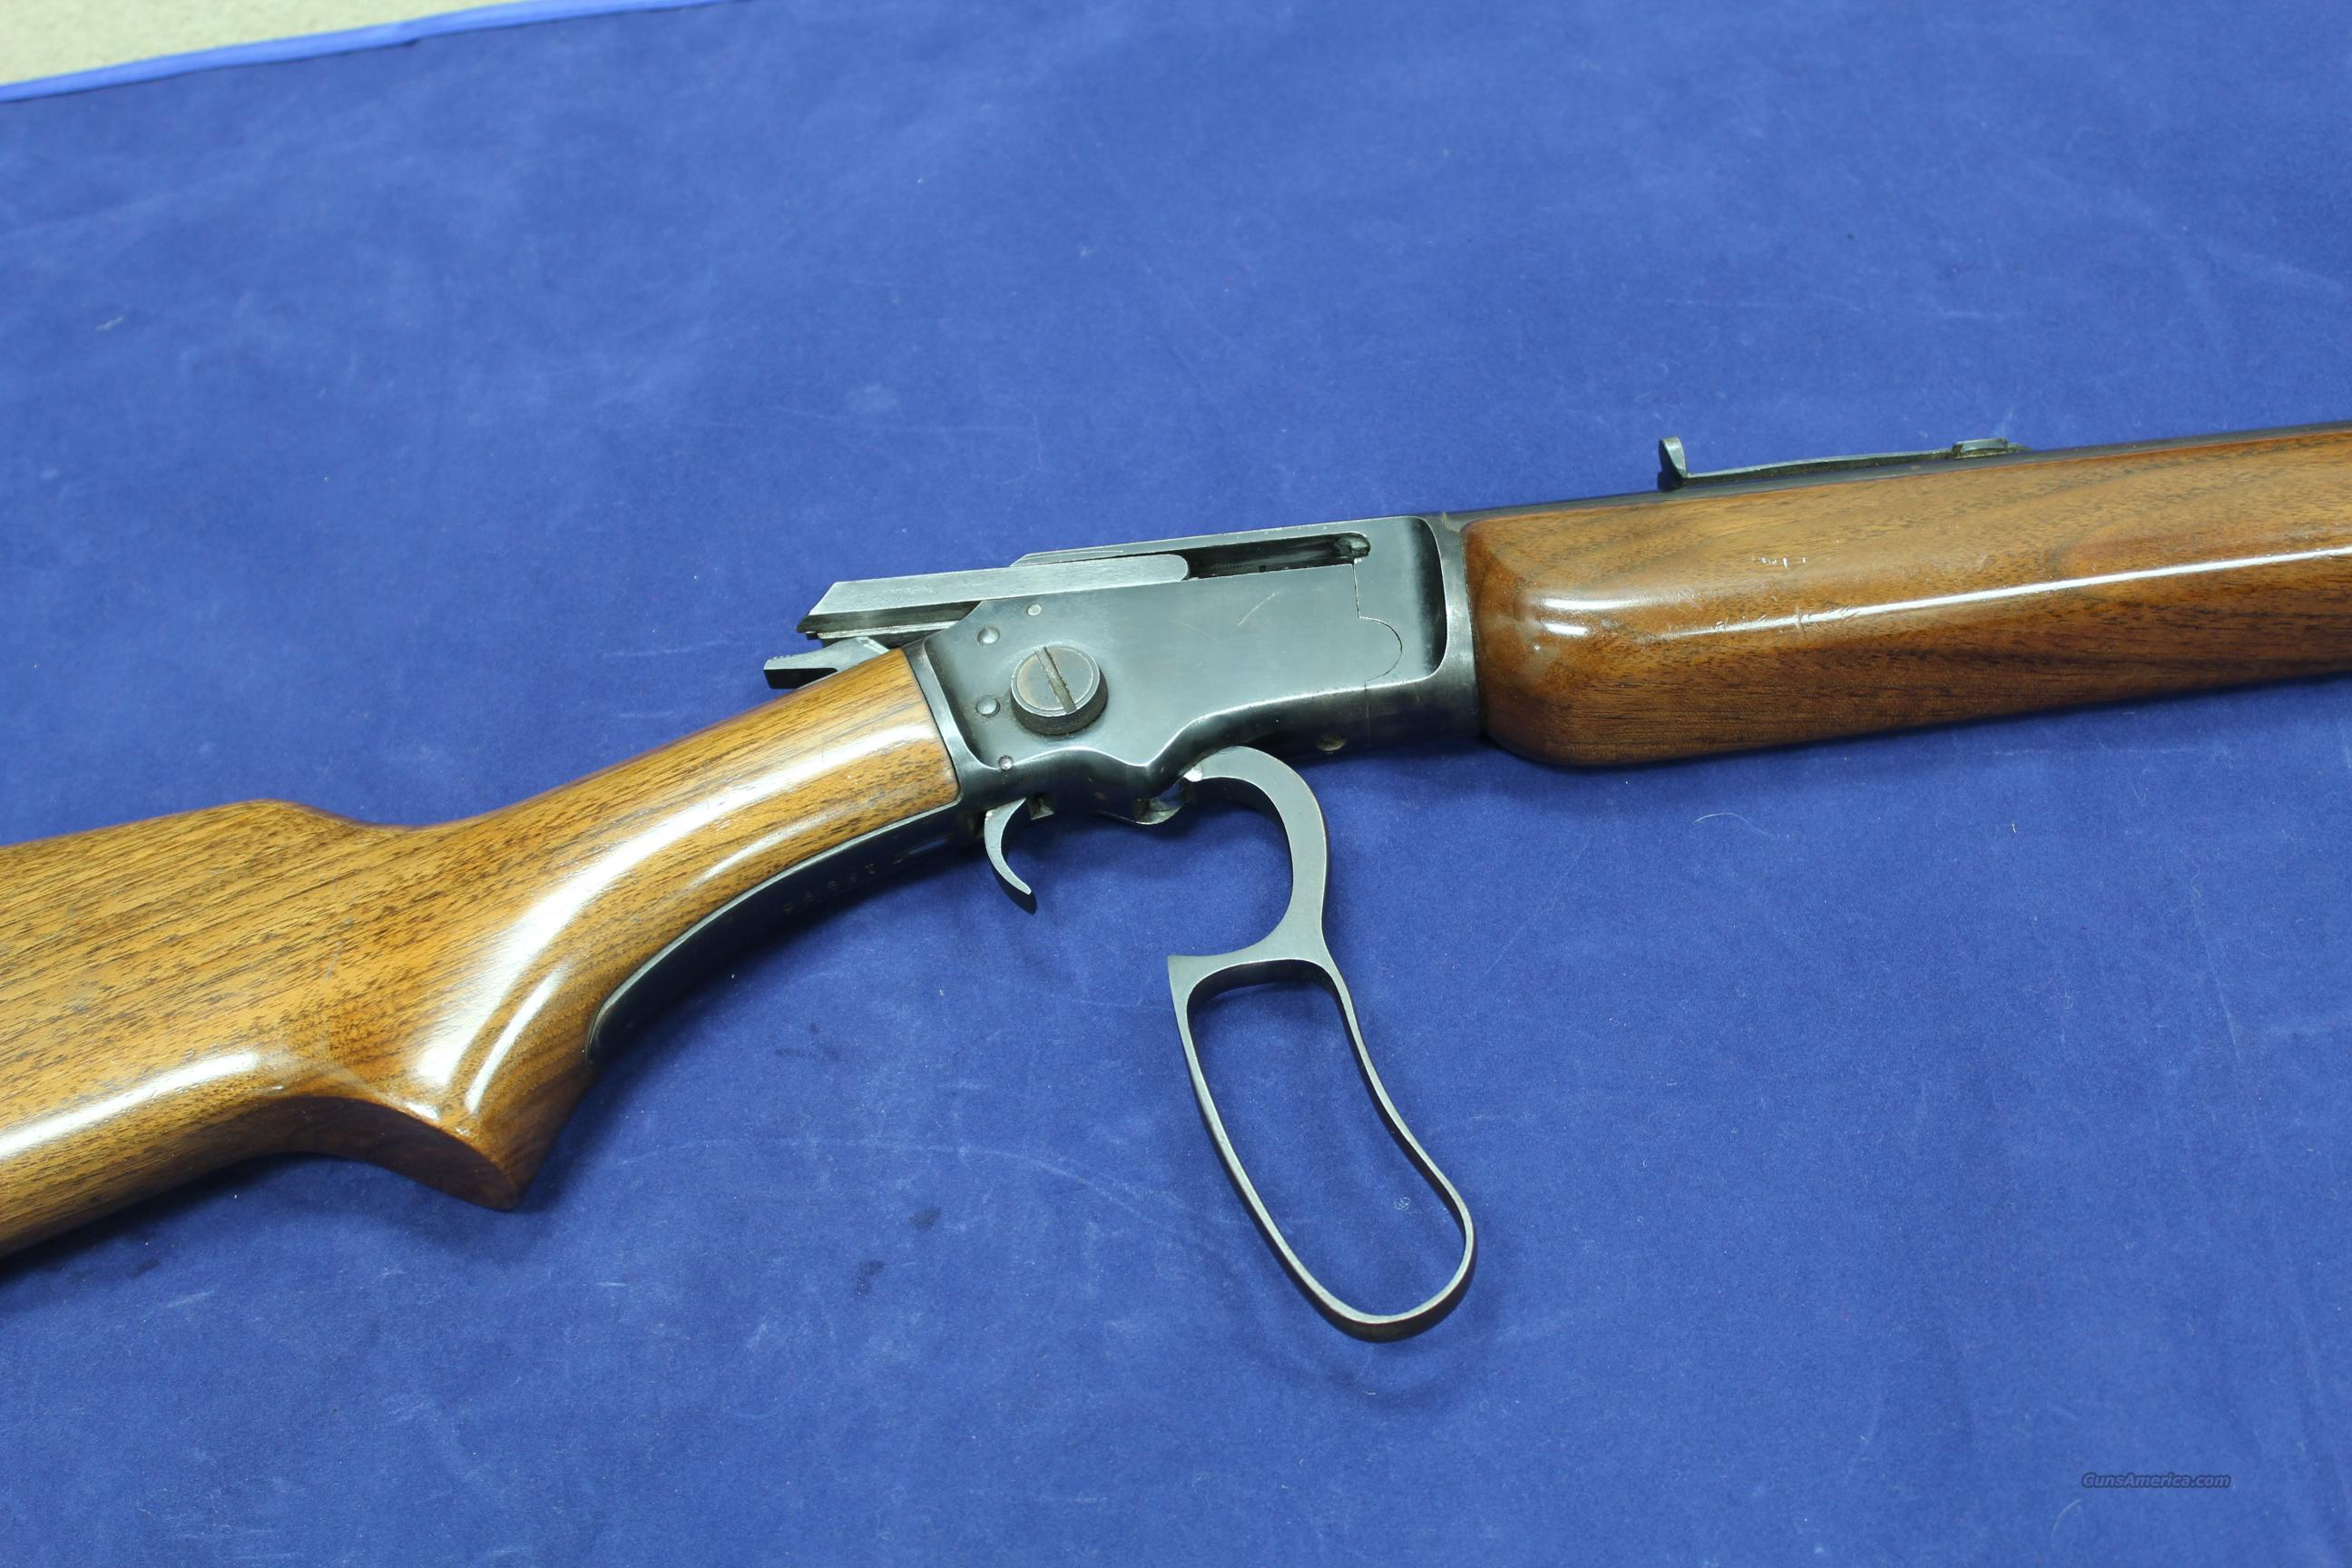 Marlin 39A Lever Action .22LR Rifle for sale